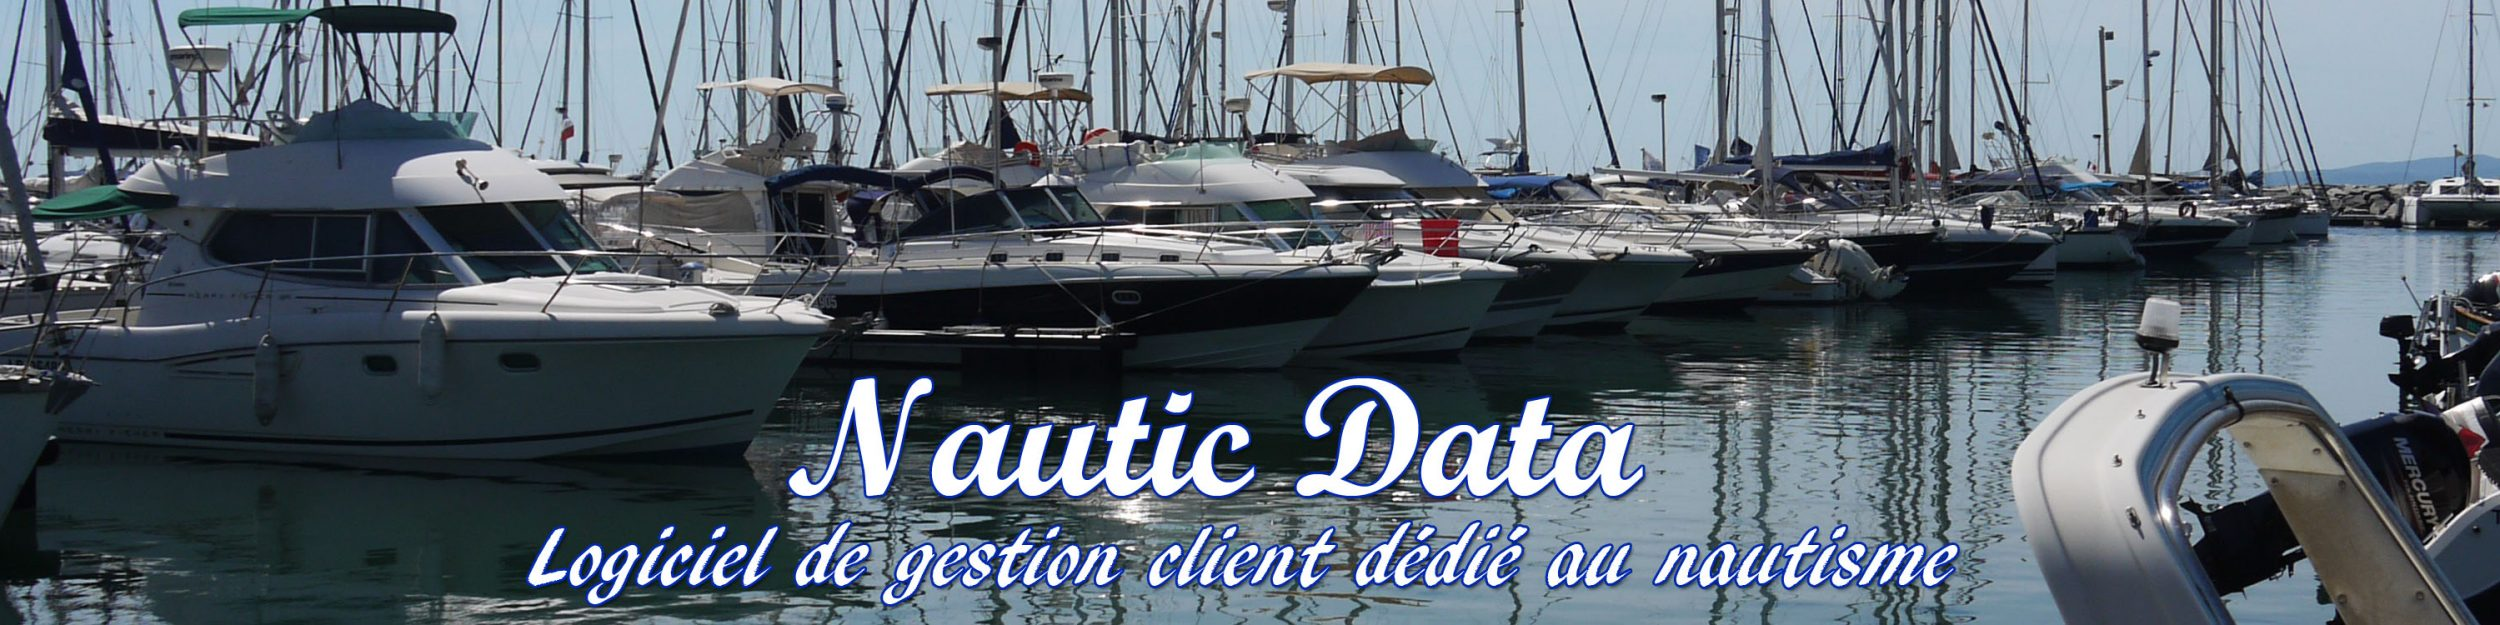 Nautic Data